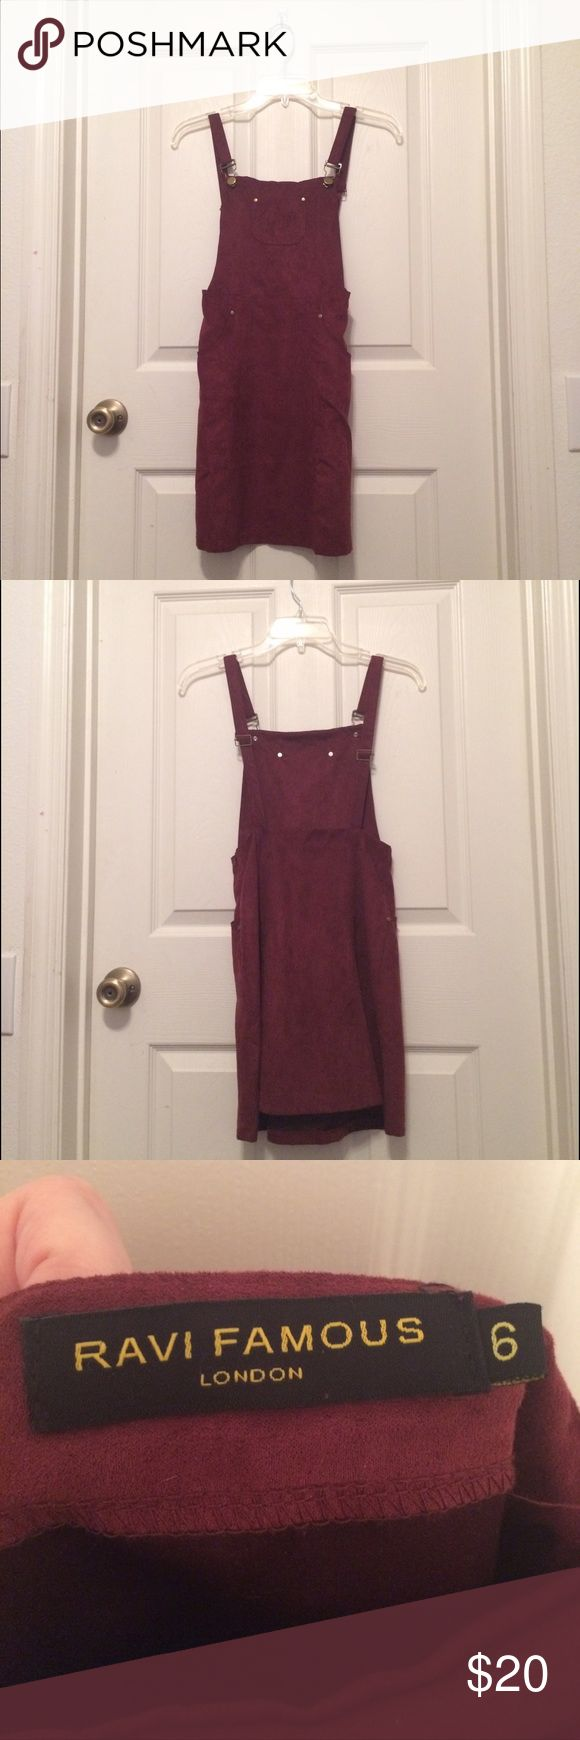 Wine colored faux-suede pinafore Only worn to try on. There's nothing wrong with it, it's just too small for me. European size 6, a size 2 in US. If you want measurements, just ask! It has three pockets, adjustable straps and a zipper on the side. I wouldn't recommend for someone with big hips or butt because it's hard to get on over those assets. Any questions or offers, just ask! Ravi Famous Dresses Mini